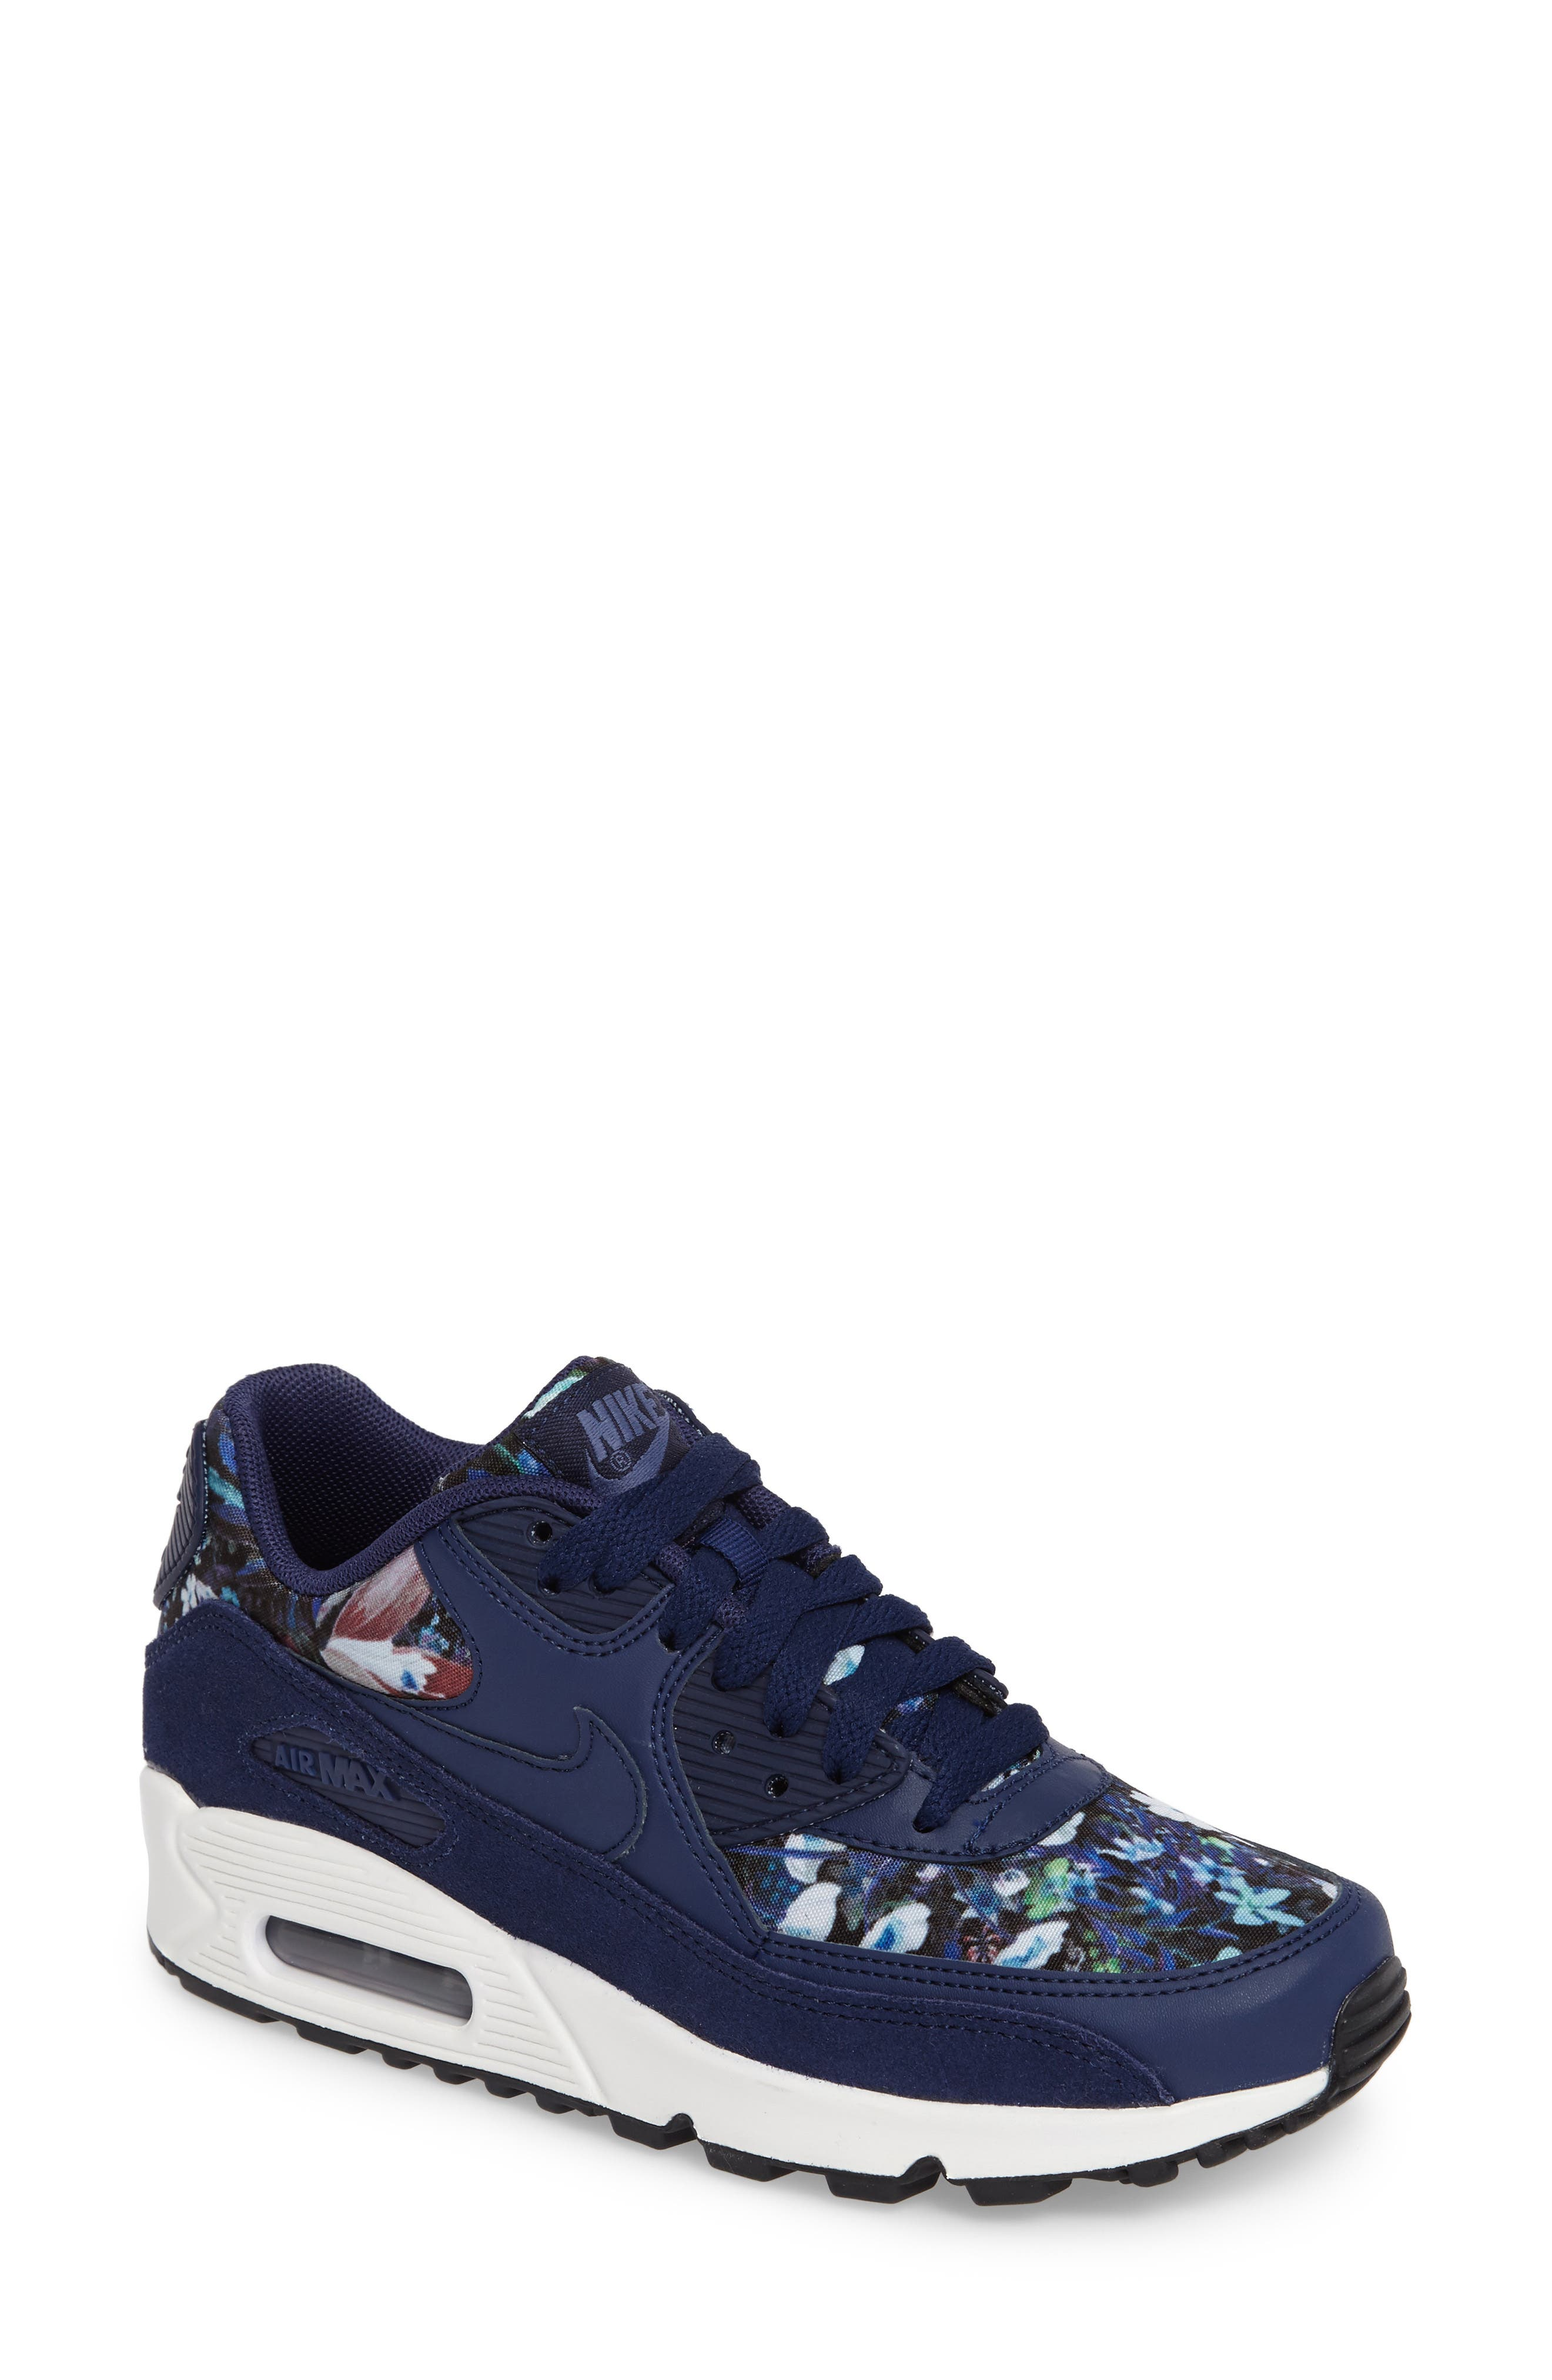 Nike Air Max 90 SE Sneaker (Women)